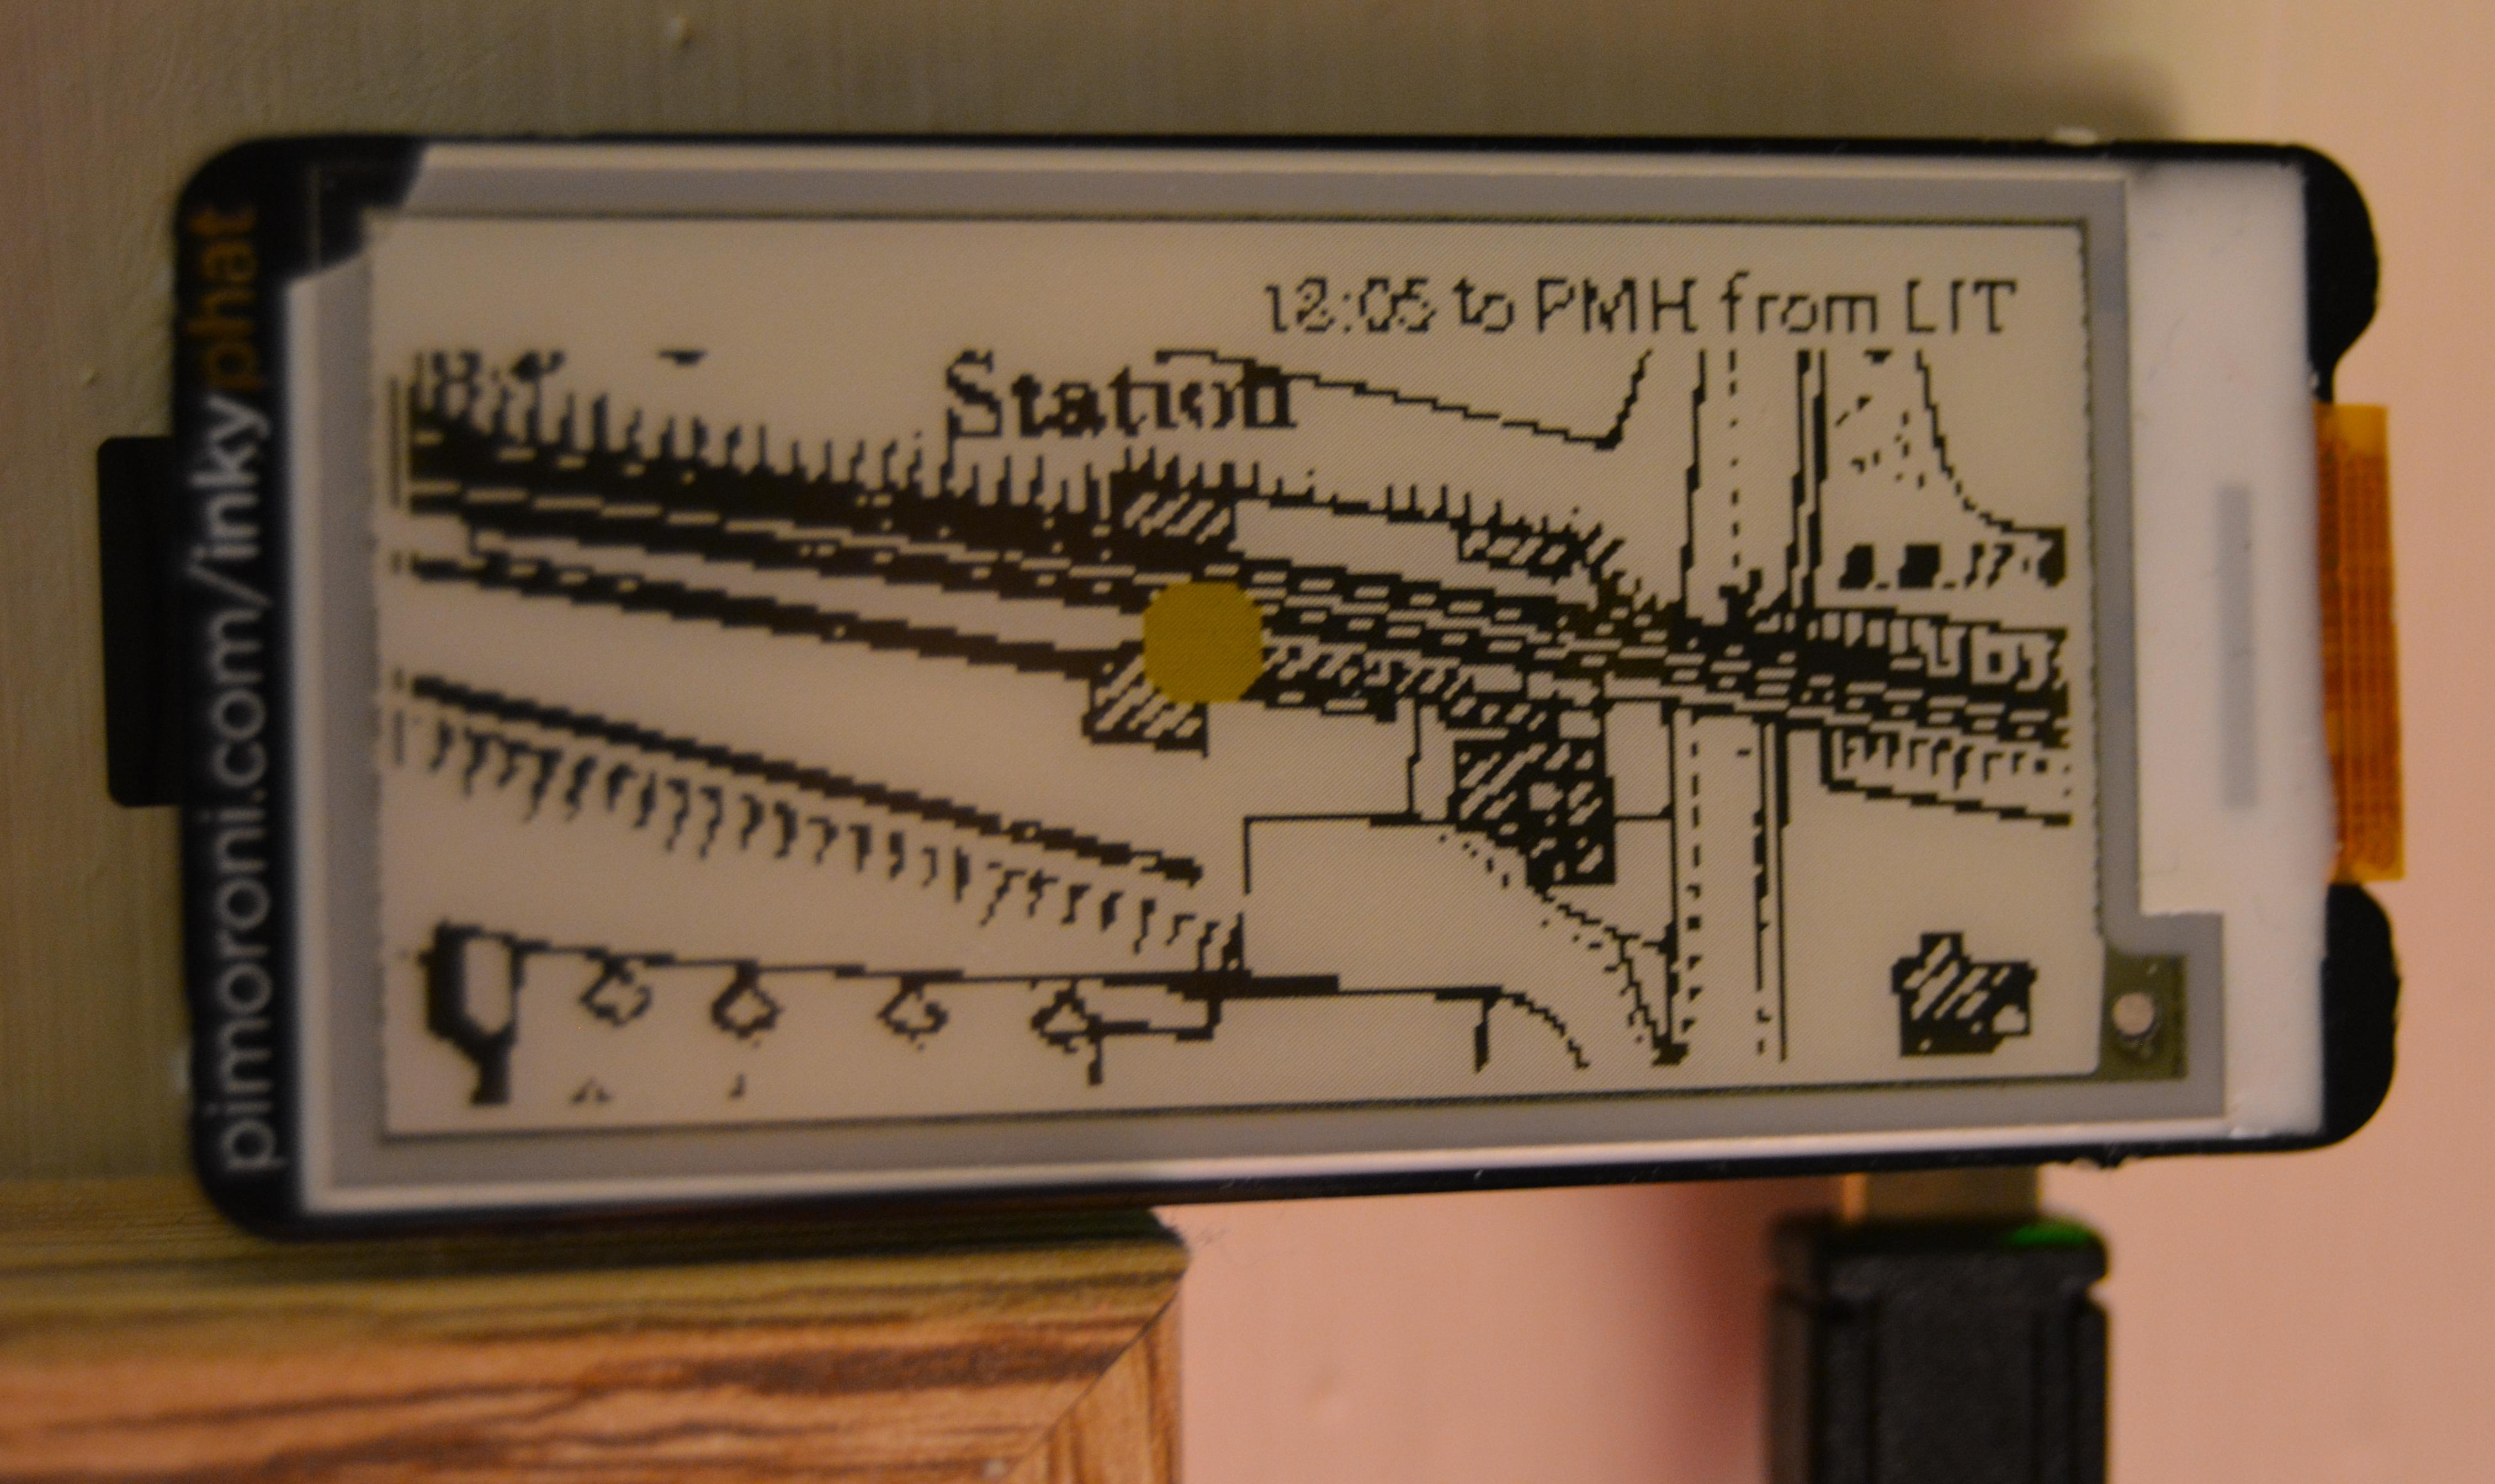 Photo of the station tracker e-ink display with a train at the platform